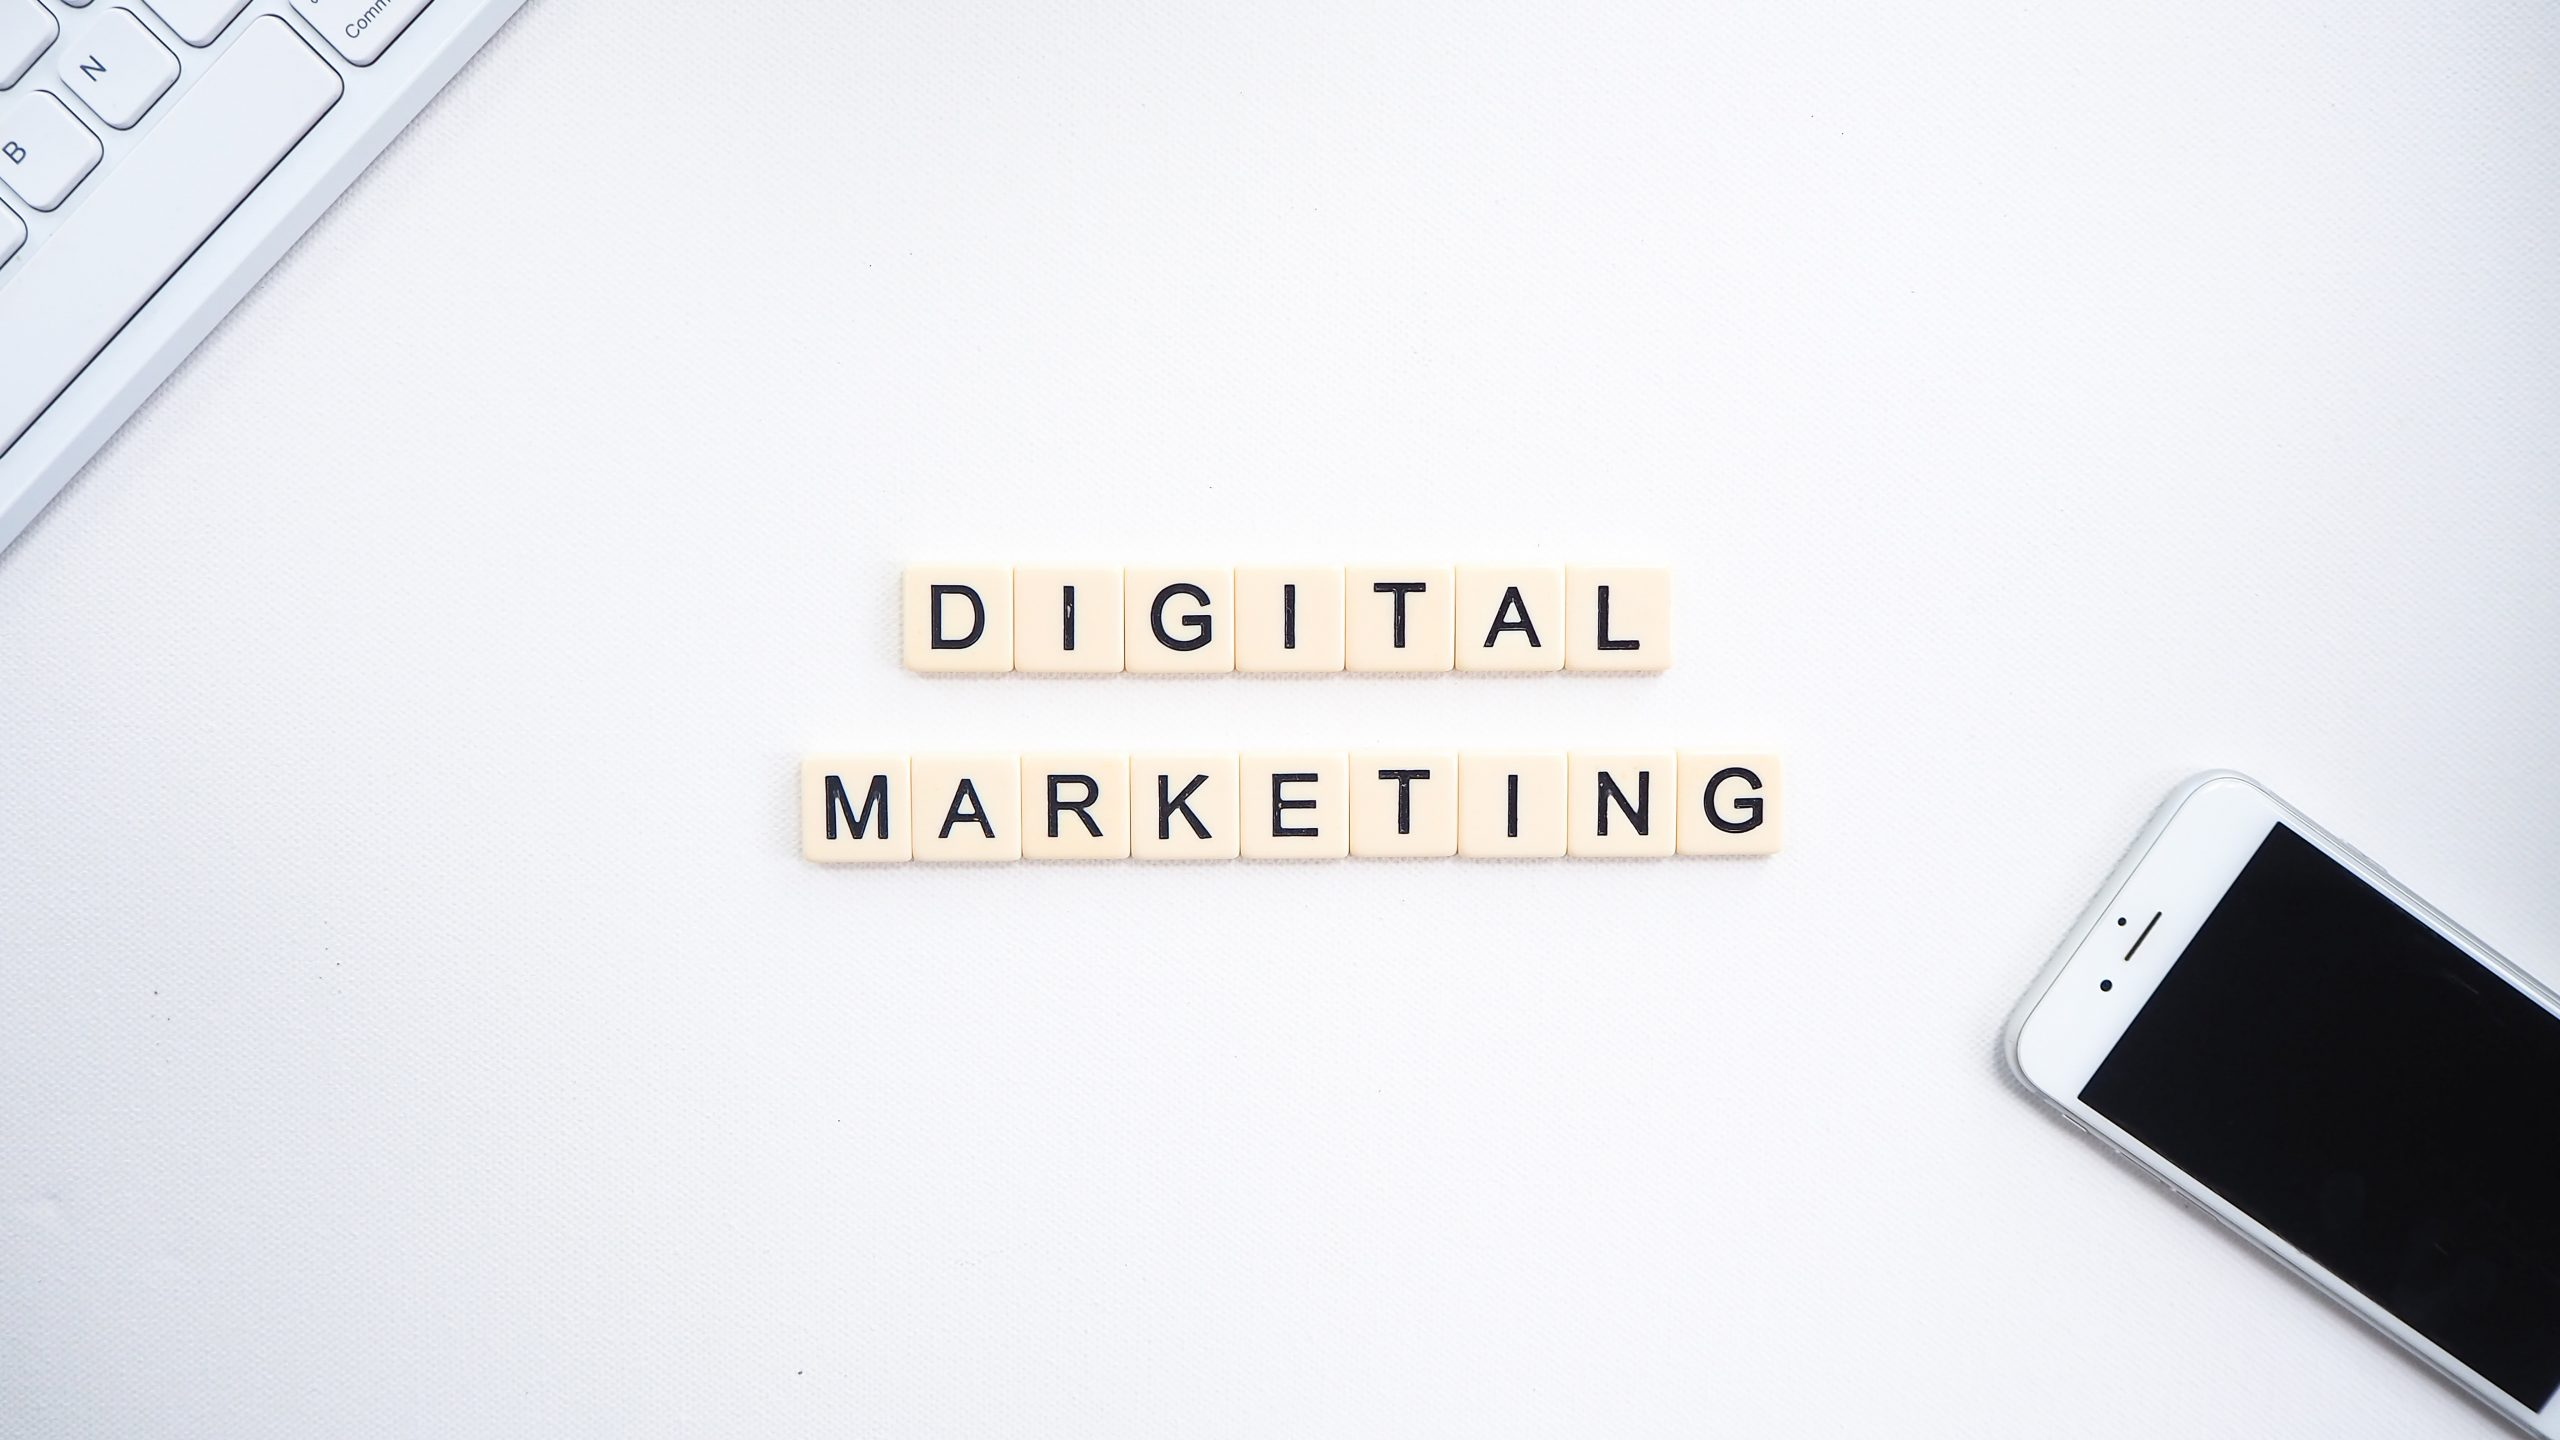 Digital Marketing Agency: How to Start and Tips to Succeed!